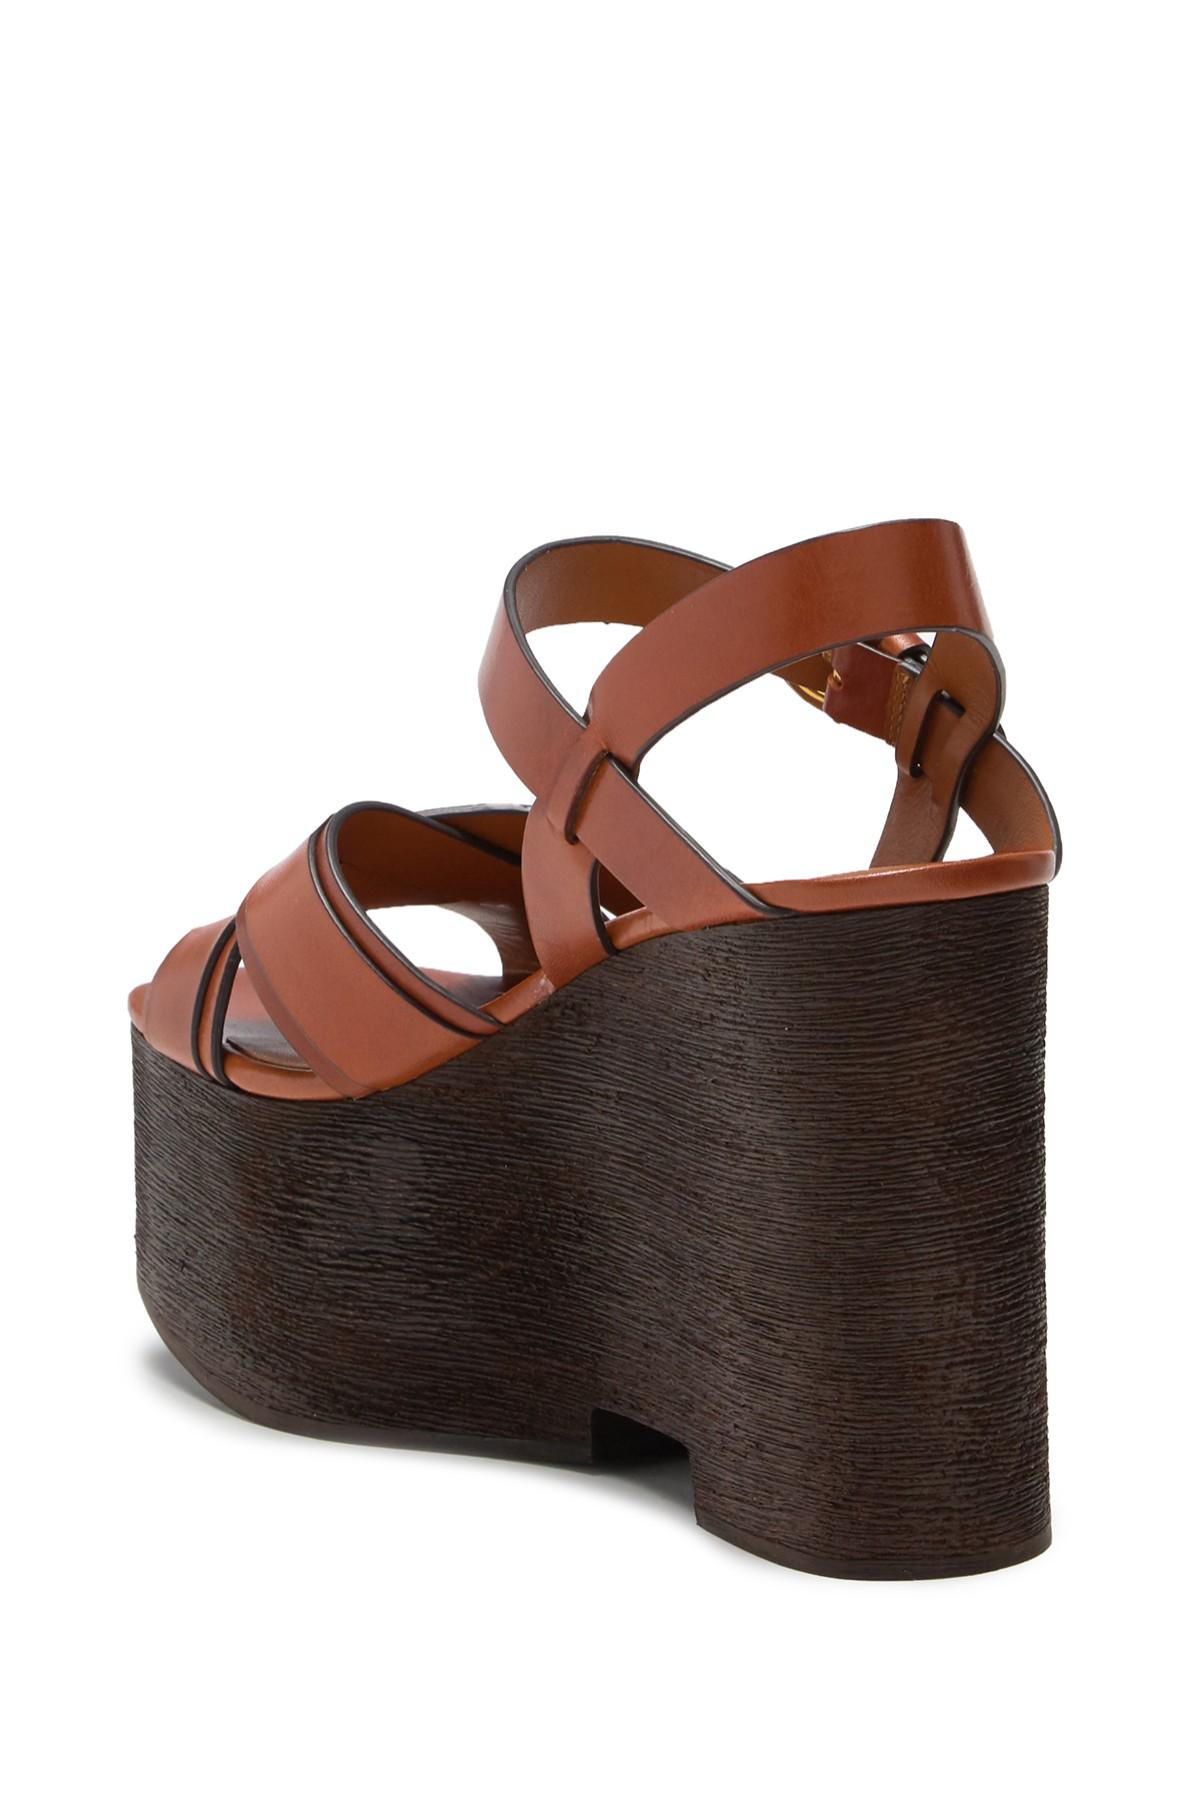 1fe7a2558573 ... Brown Paloma Status Leather Wedge Sandal - Lyst. View fullscreen